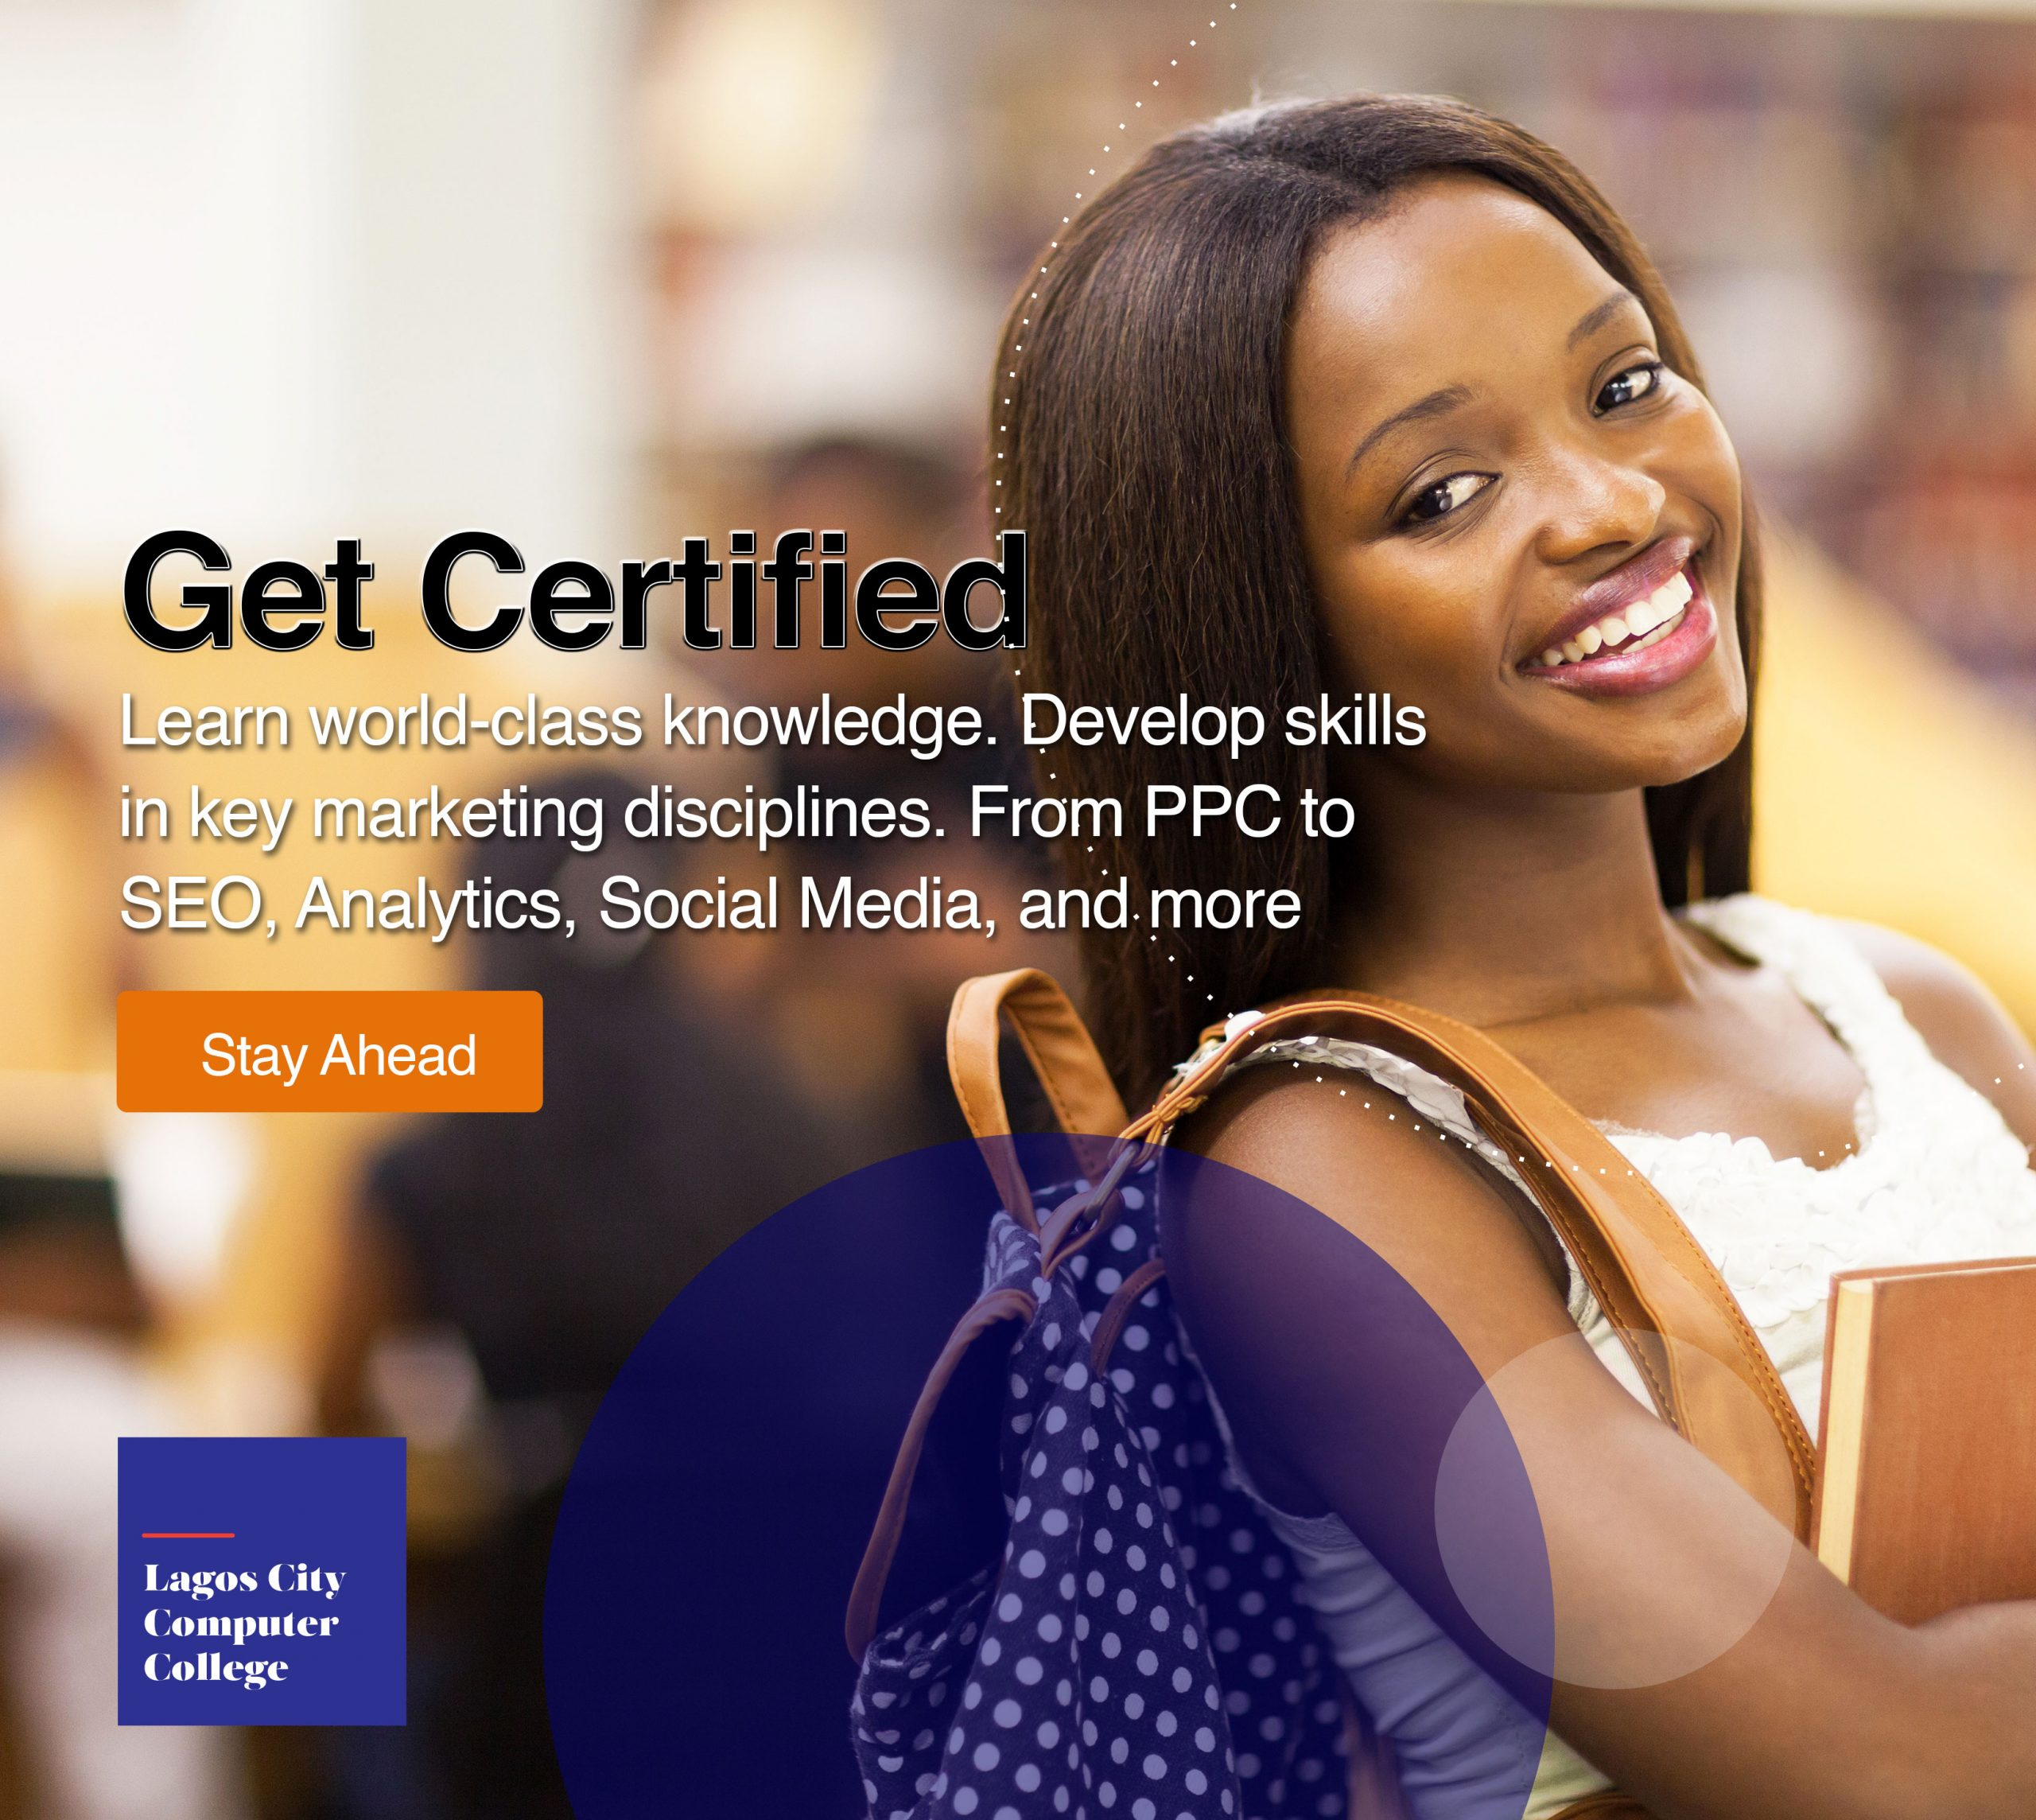 Lagos City Computer College (LCCC), one of Nigeria's most prestigious tertiary institutions in information technology, has introduced advanced courses to bridge skill gaps and chur